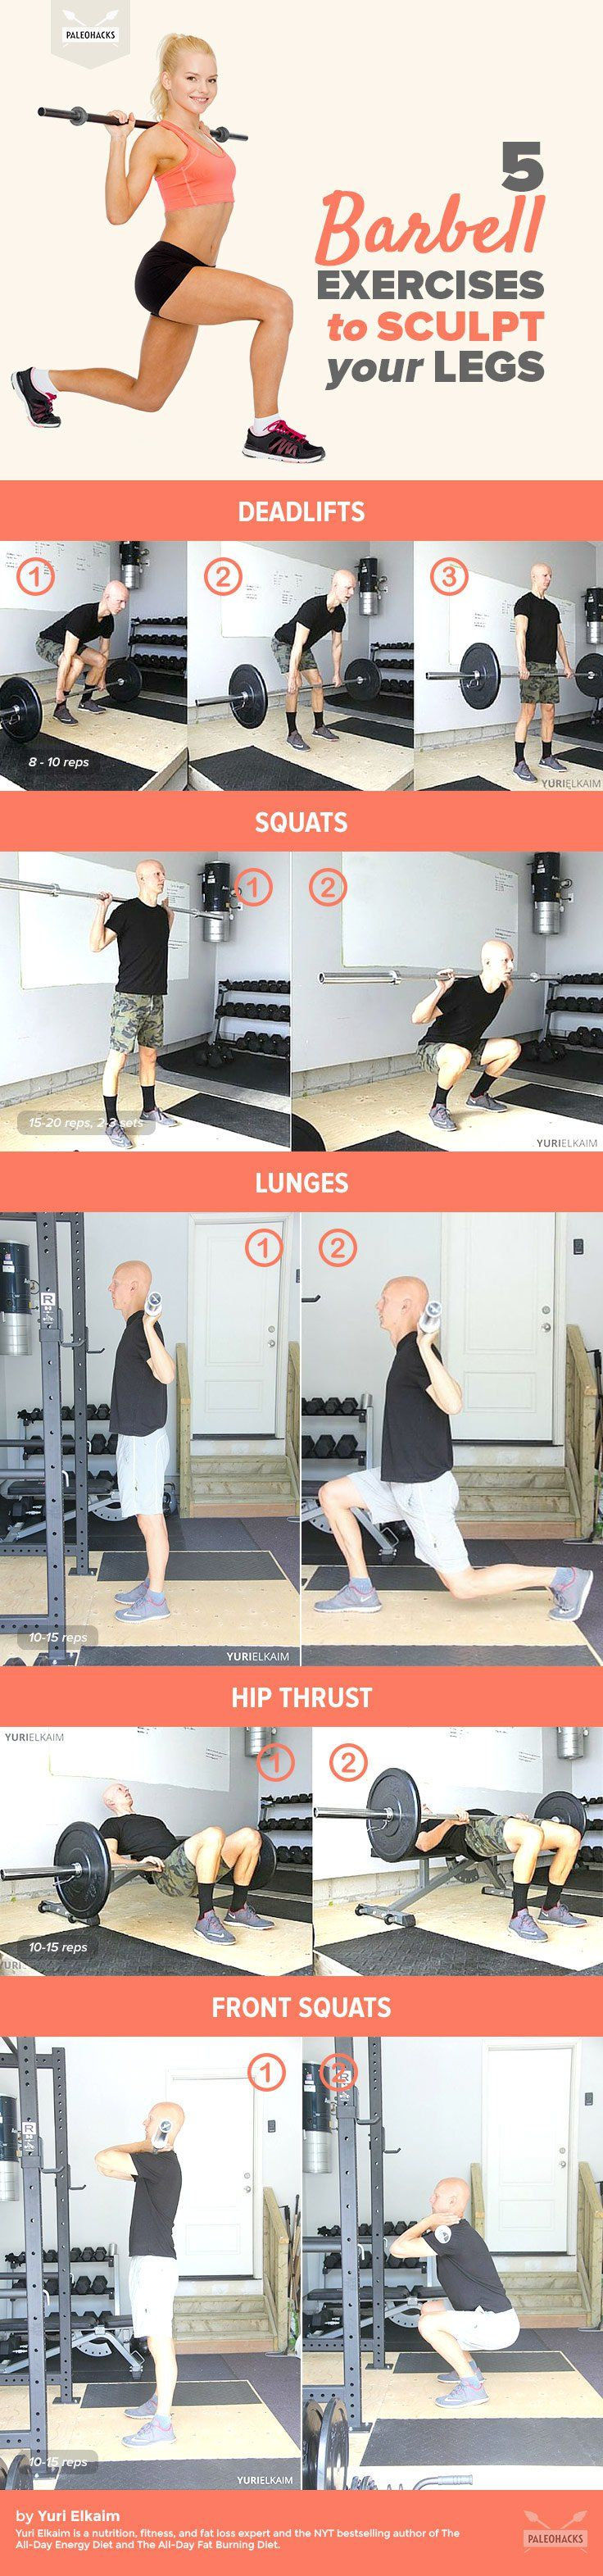 Take your workout to the next level with these barbell exercises to tone, sculpt and strengthen your legs. For the full workout regime, visit us here: http://paleo.co/barbellexercises